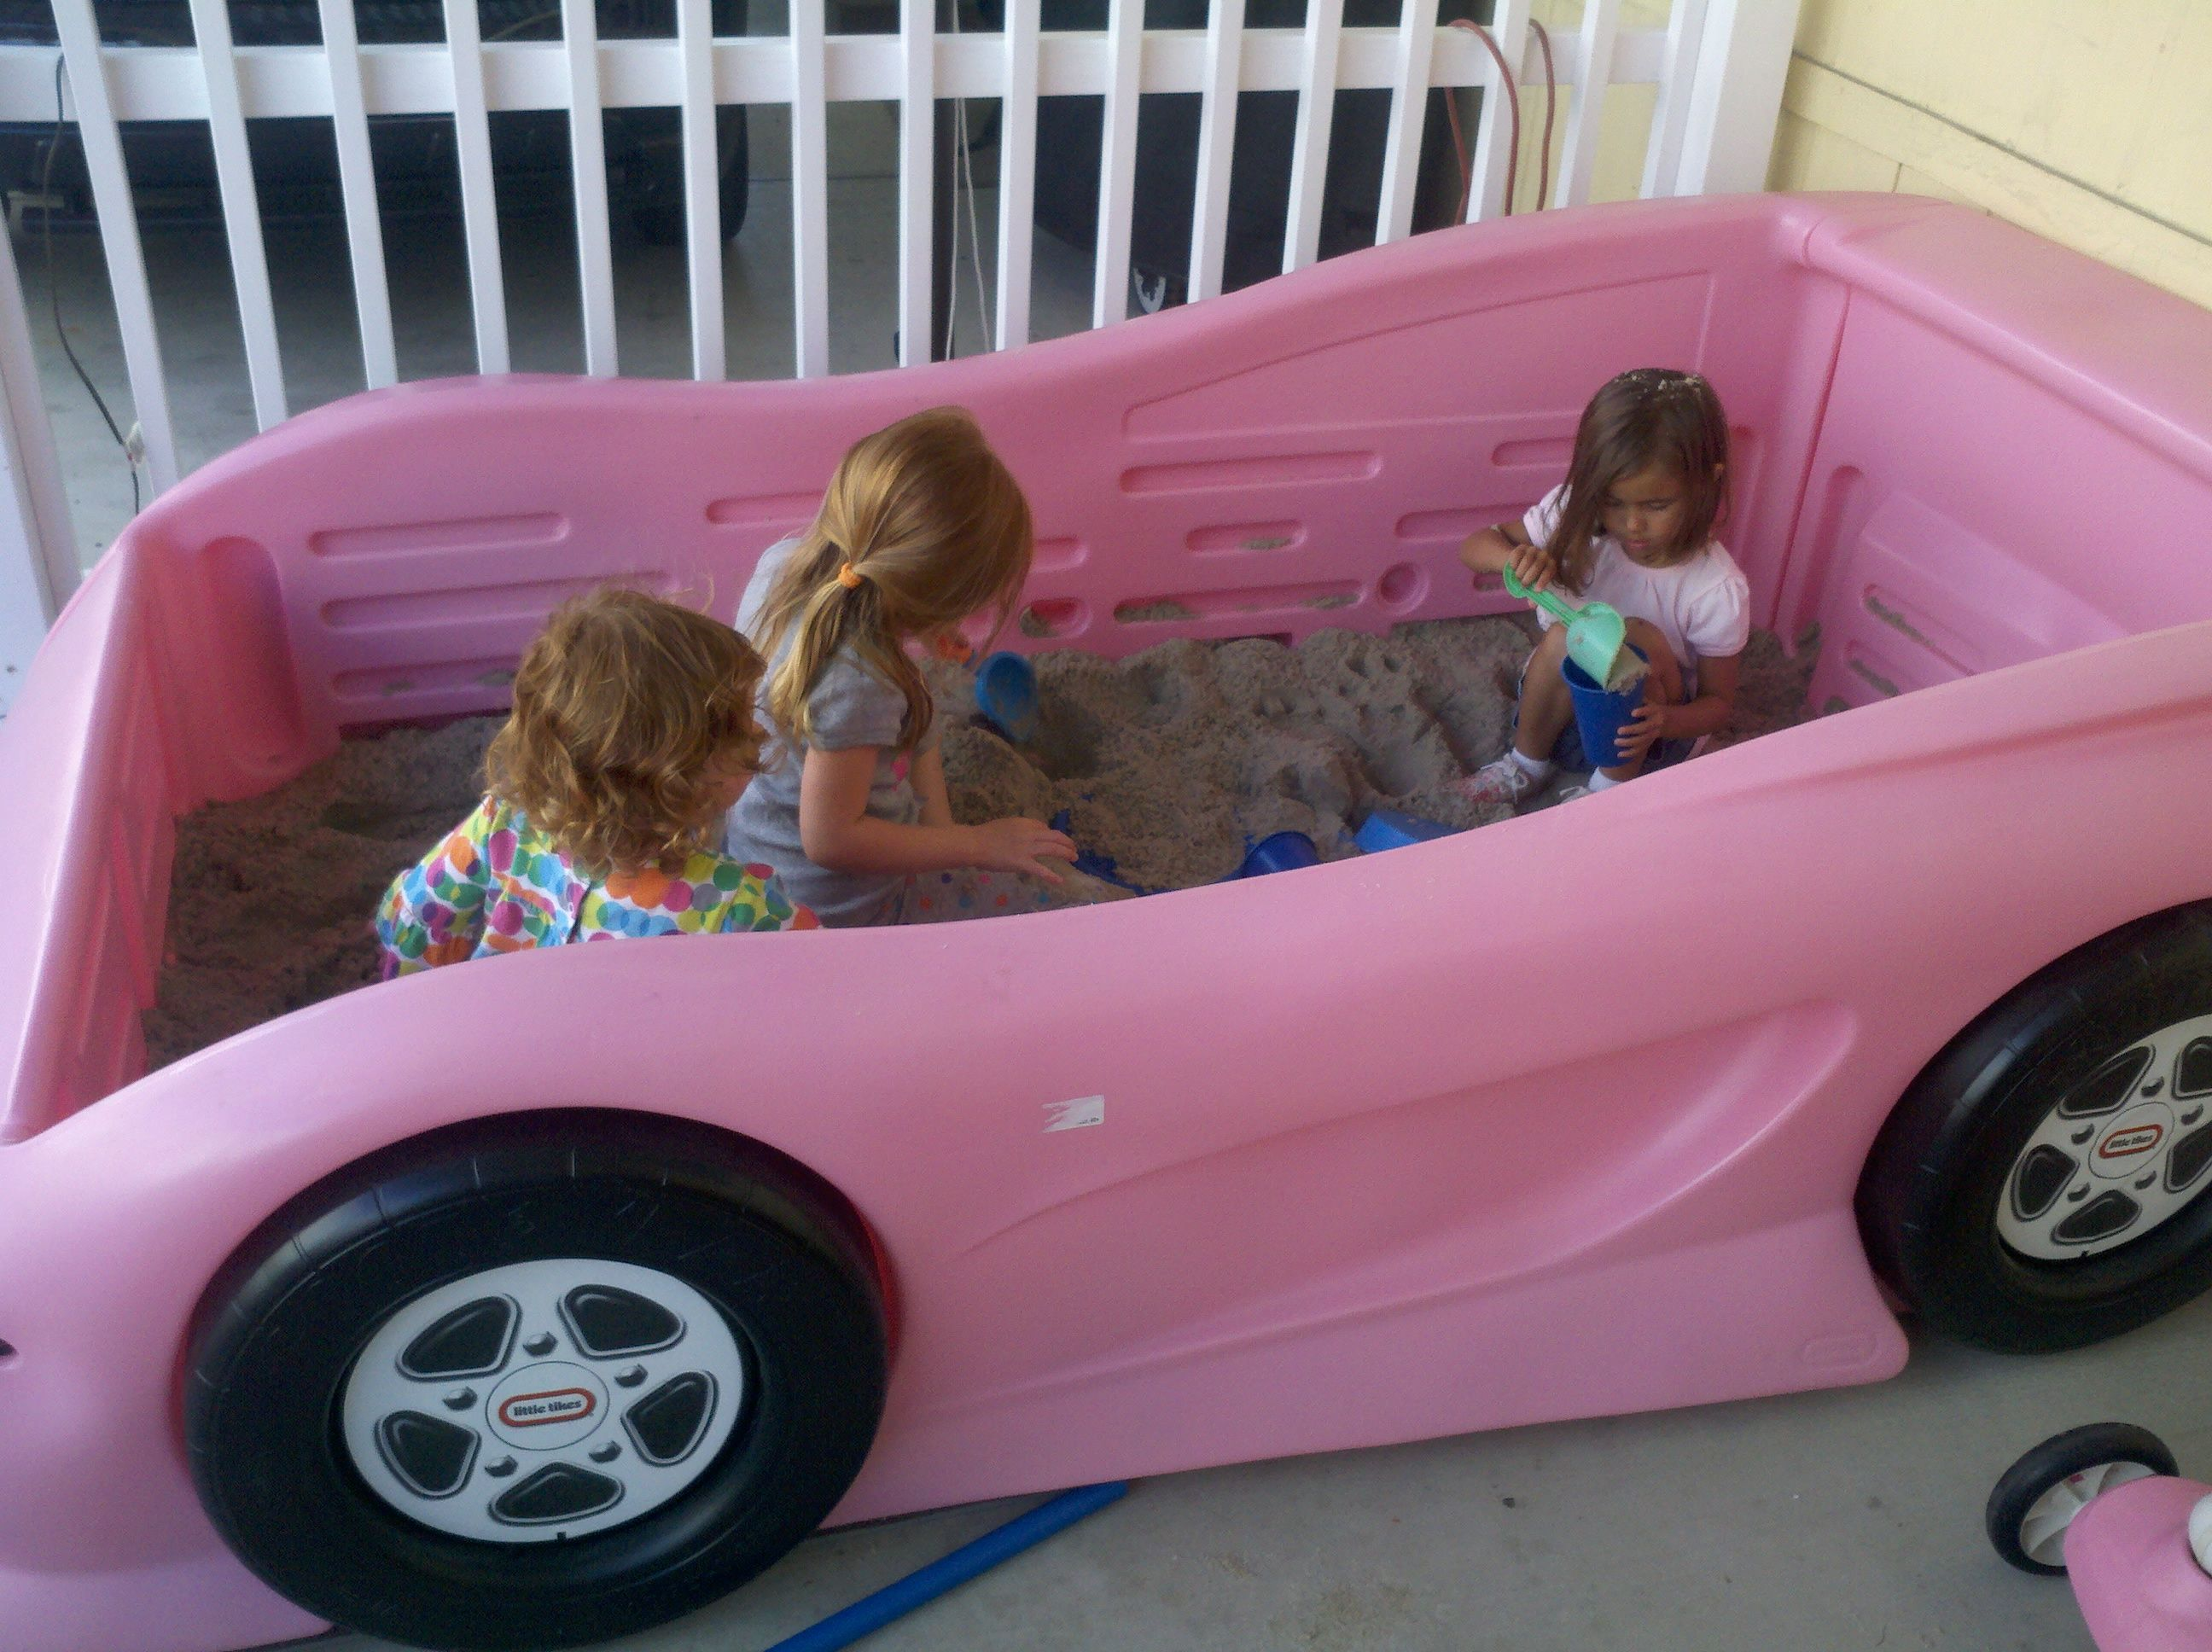 Repurposed A Little Tikes Twin Bed Into A Racecar Sandbox For The